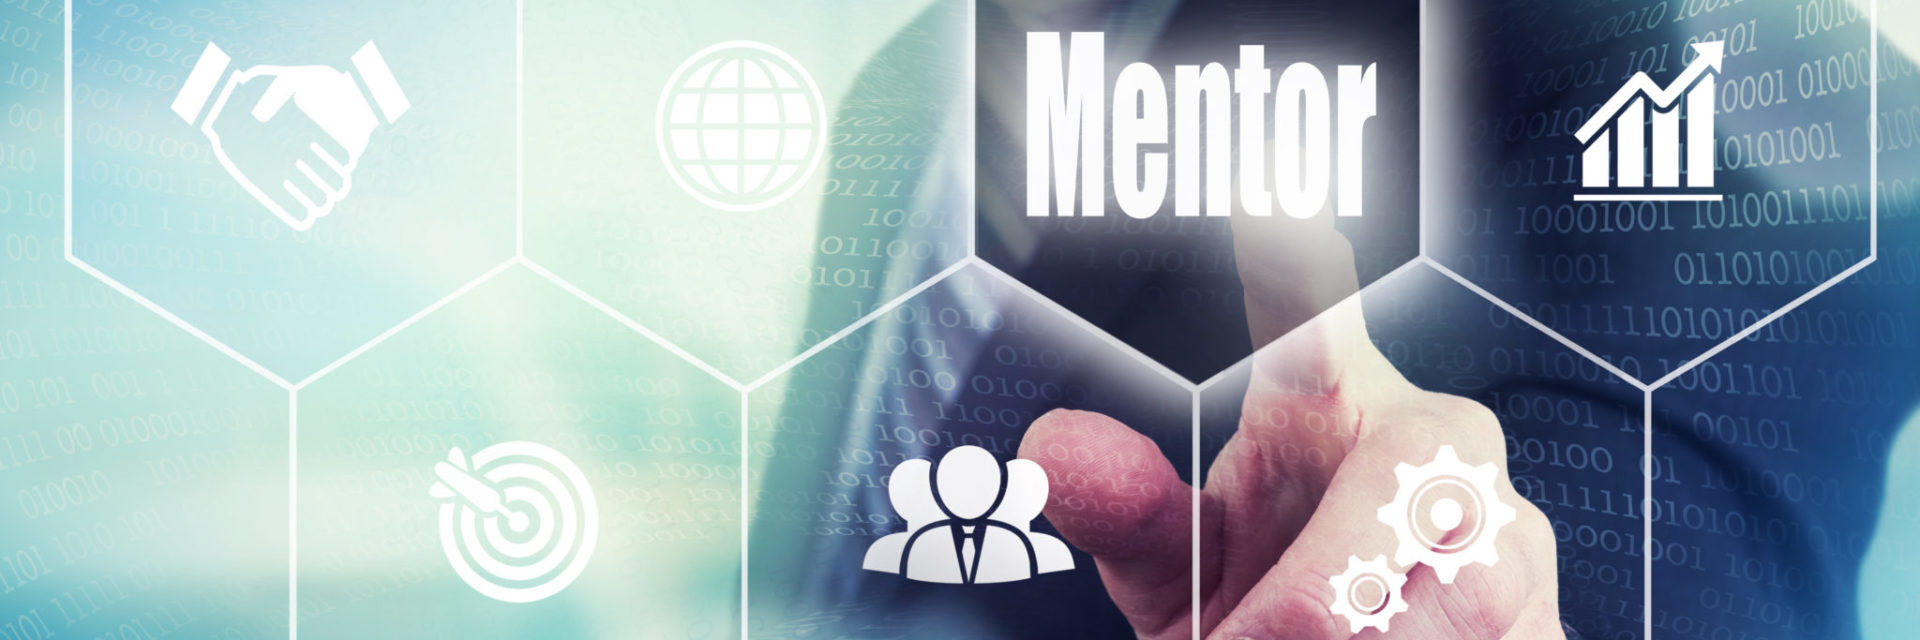 Sign up to our new mentoring program